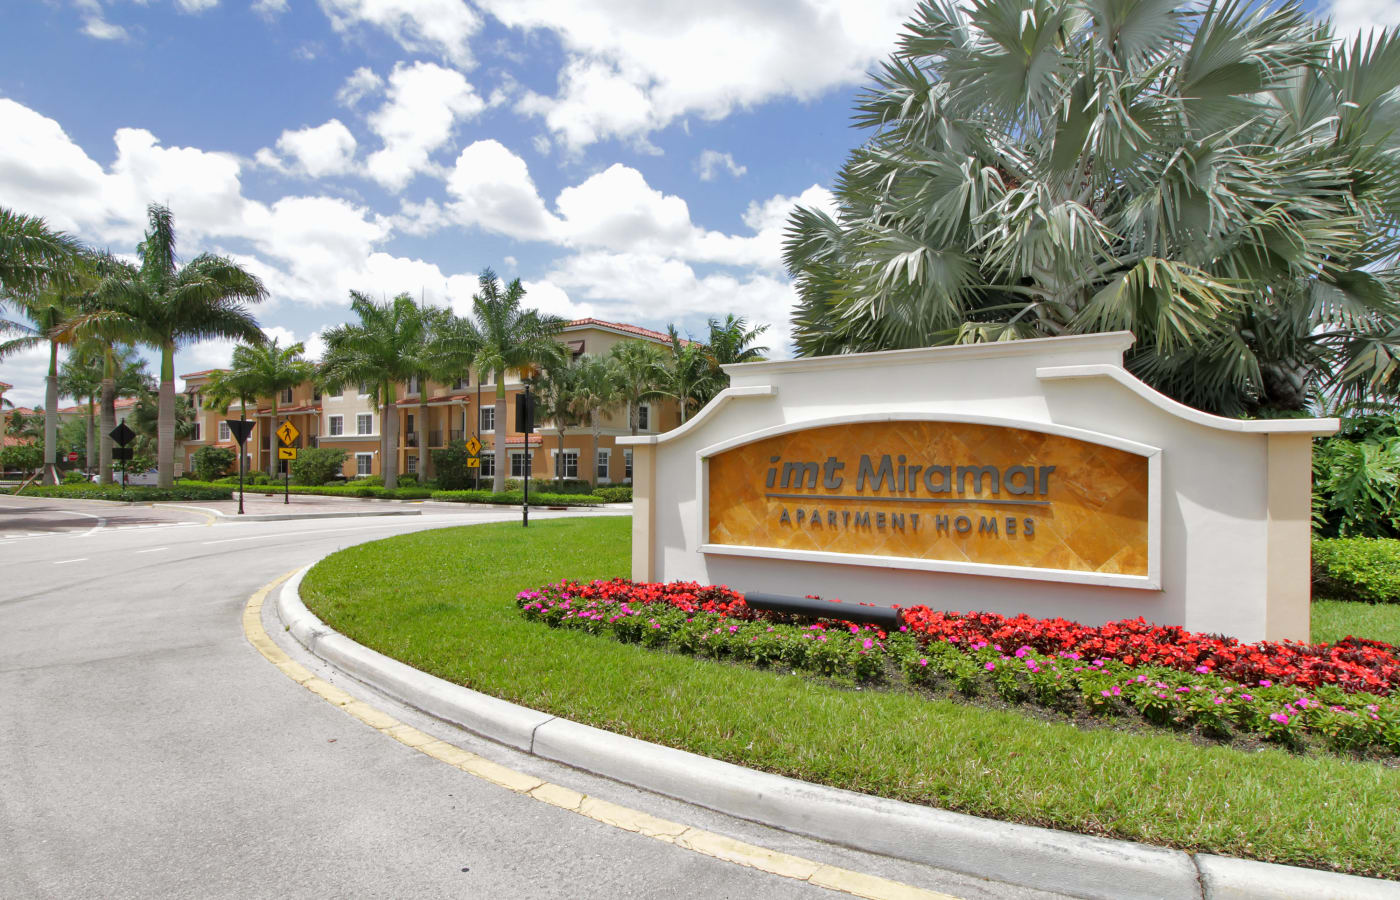 Our sign welcomes residents and guests to IMT Miramar in Miramar, FL